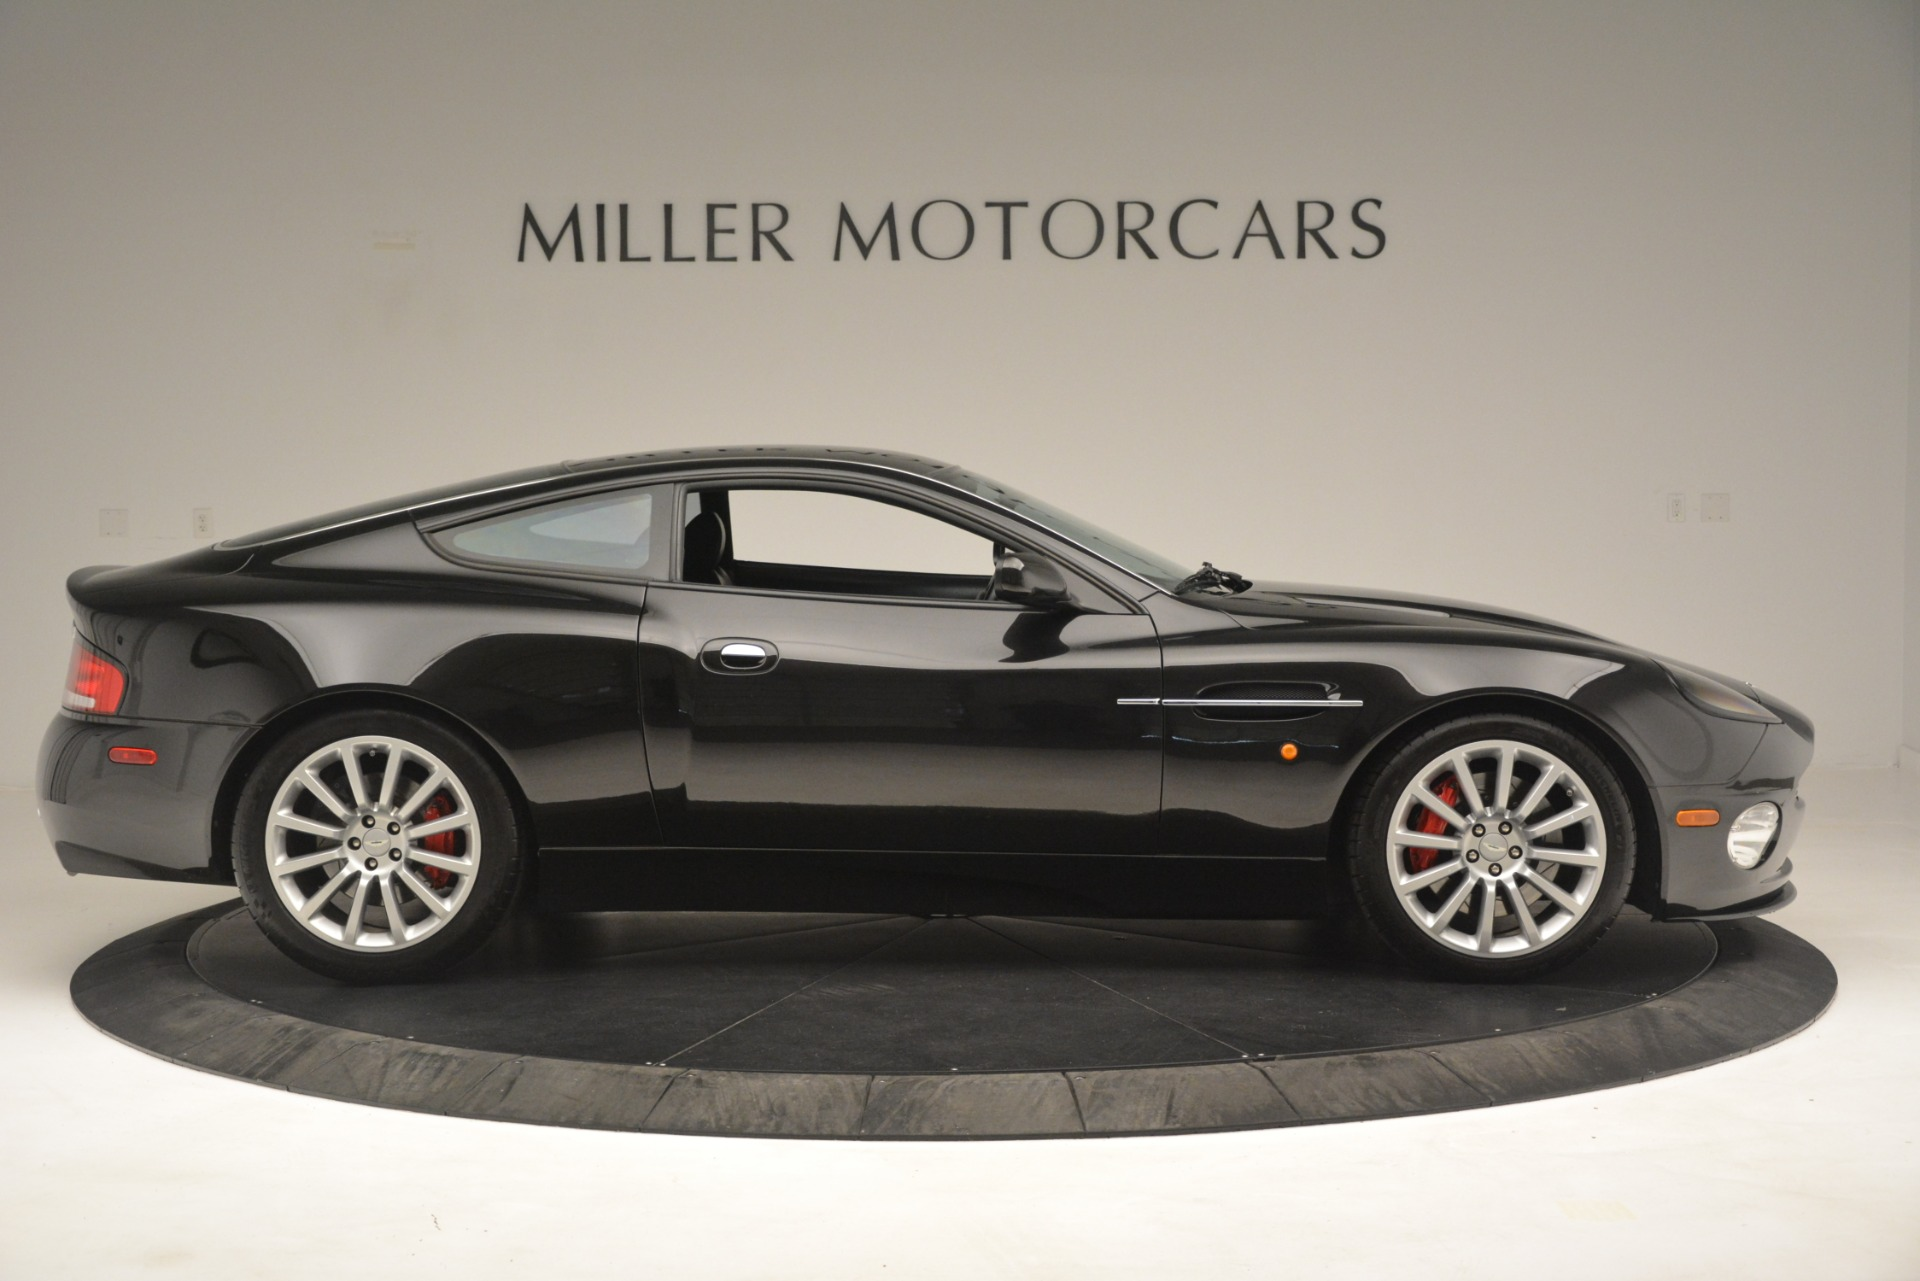 Used 2004 Aston Martin V12 Vanquish  For Sale In Greenwich, CT 3160_p7